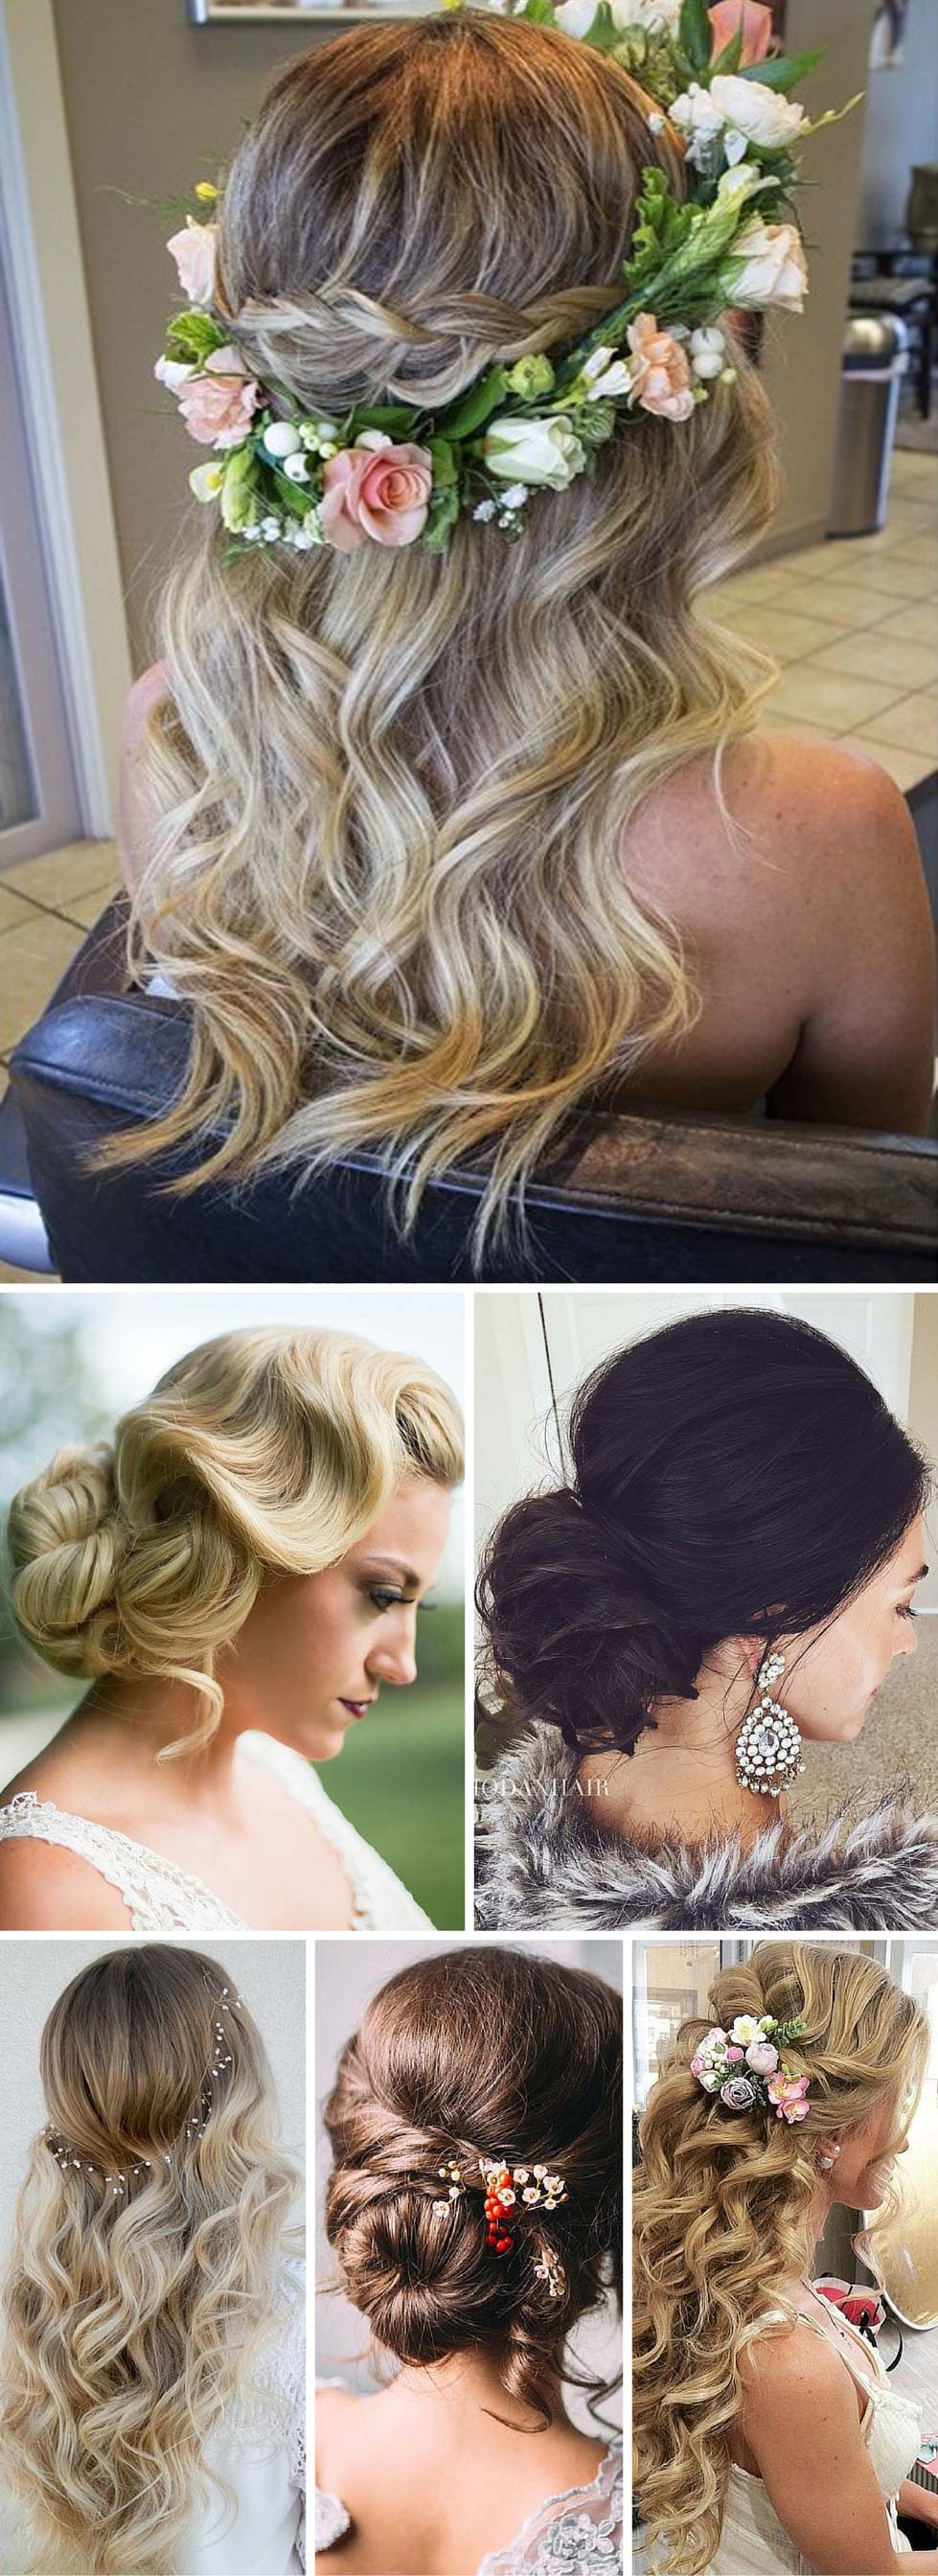 28 Breathtaking Wedding Hairstyles - StayGlam